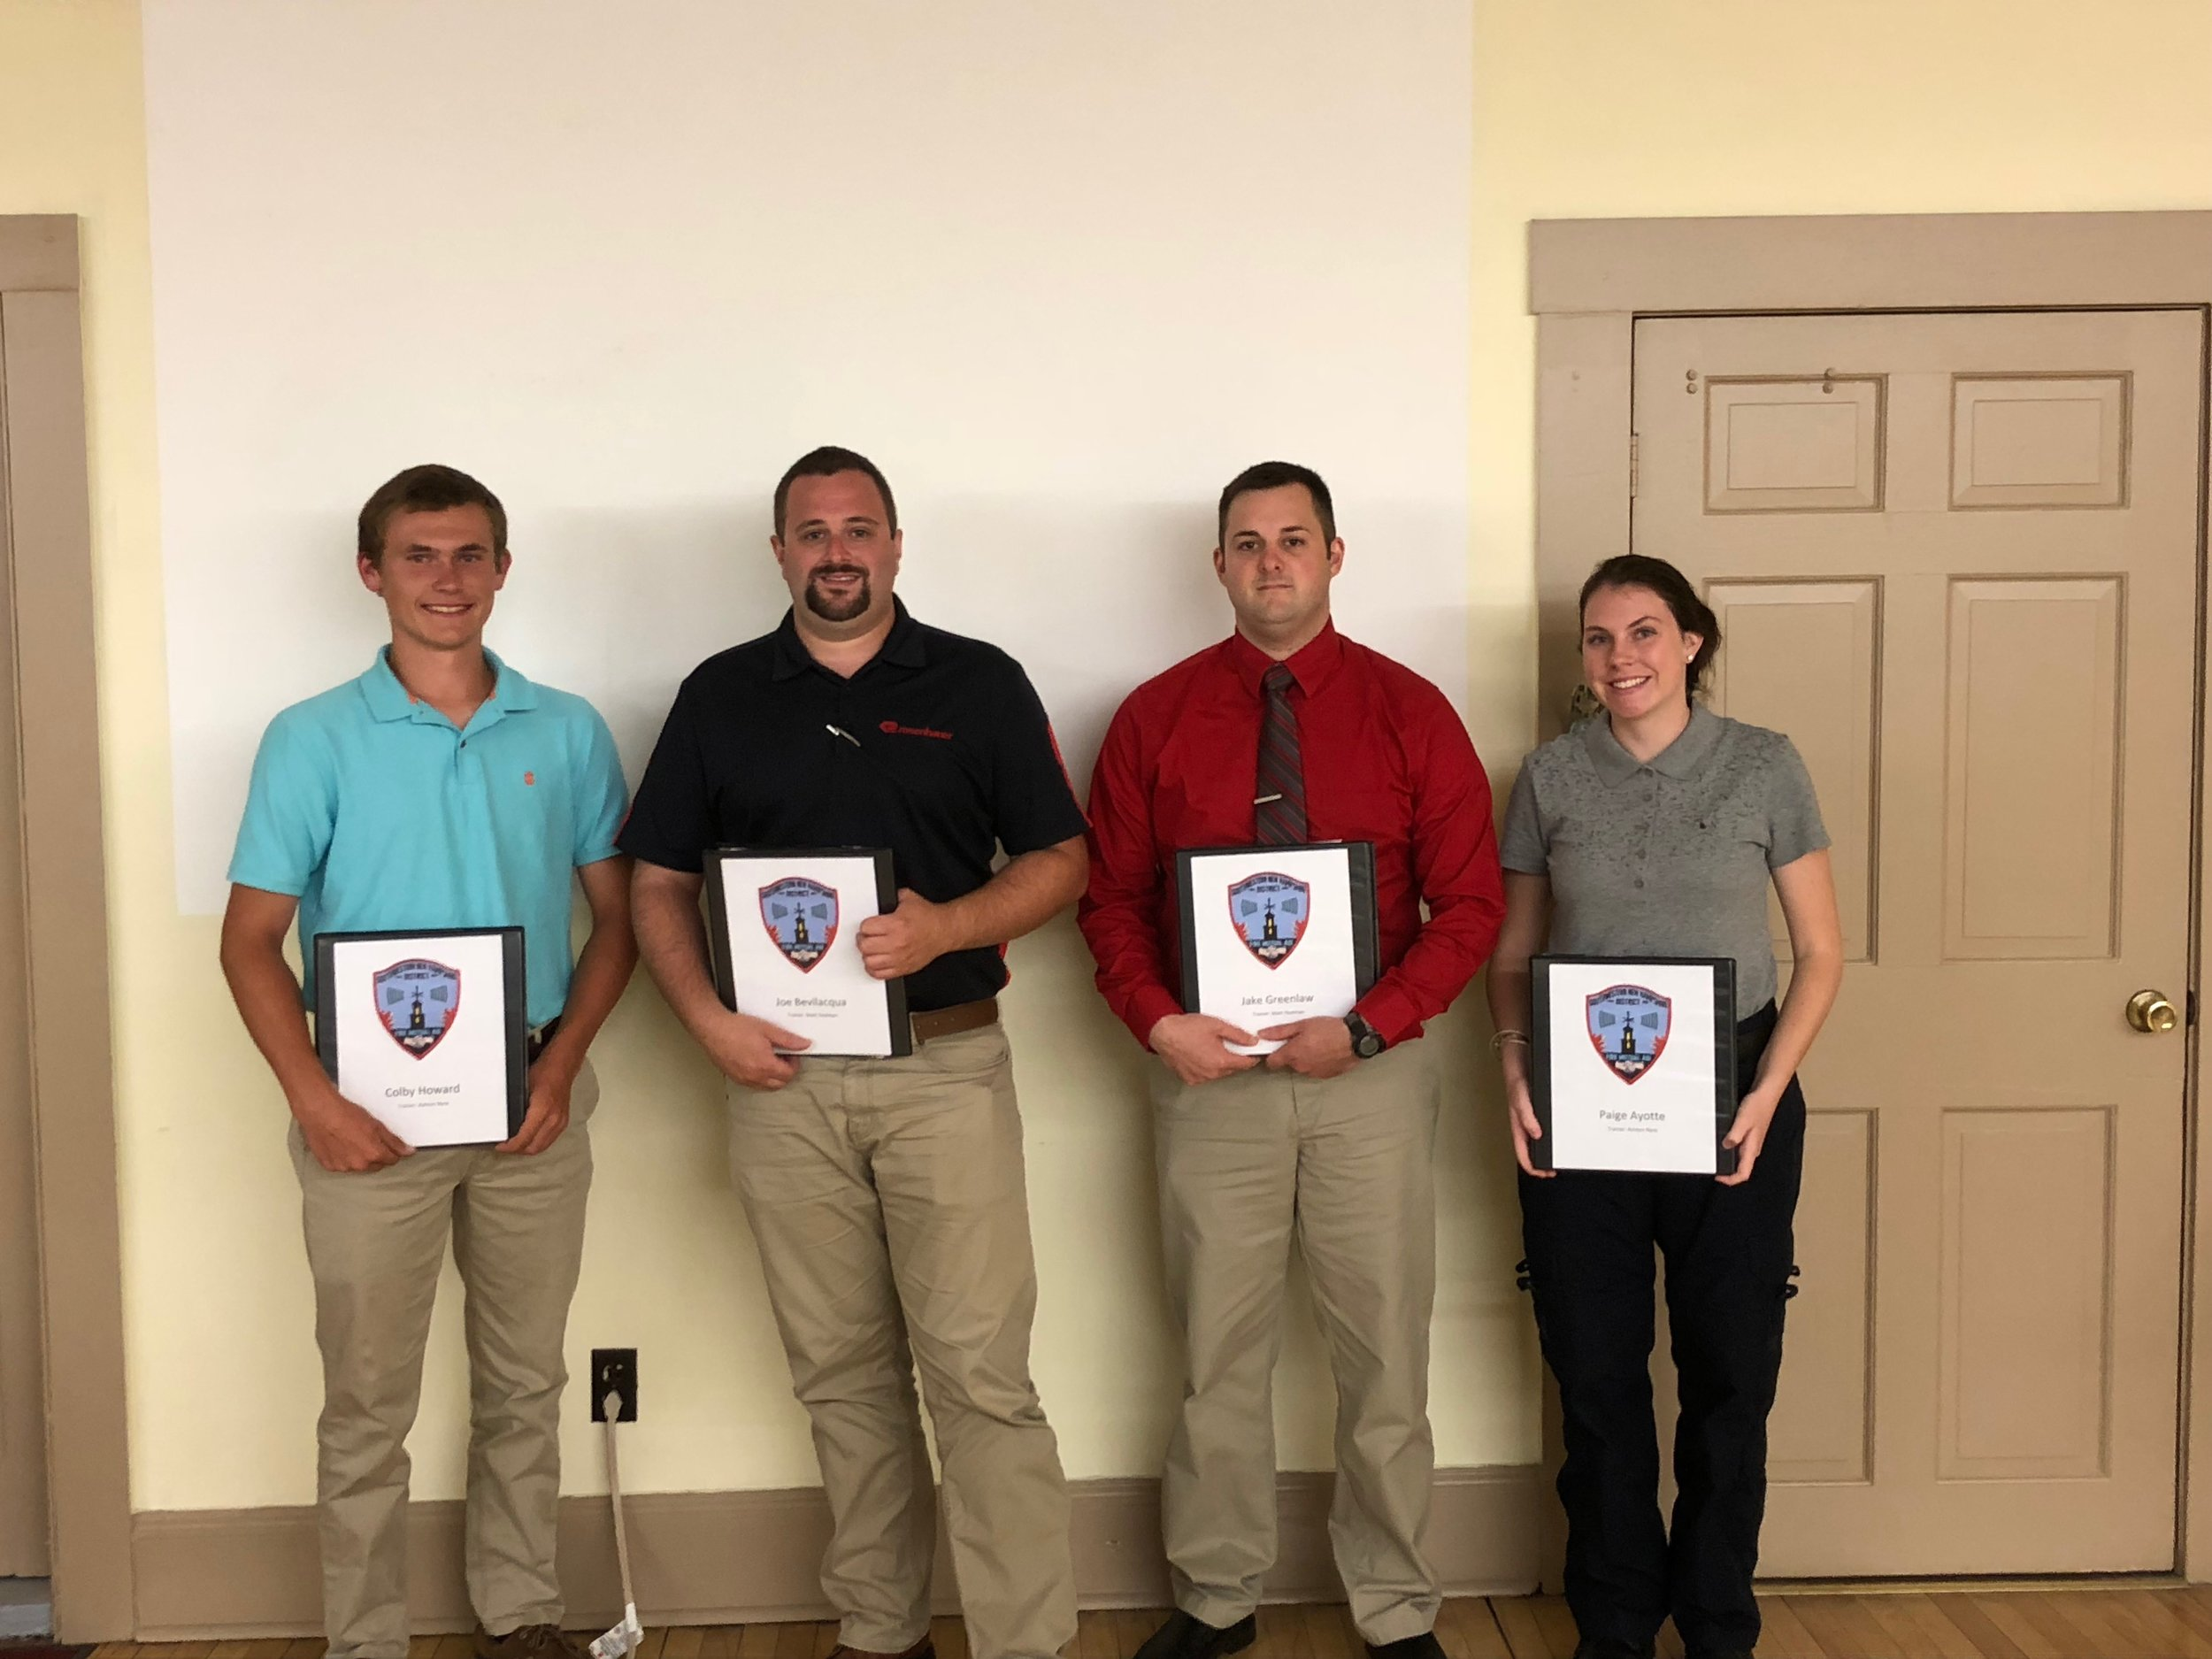 Today we had orientation for 4 new part time Dispatchers. Left to right, Colby Howard;Joe Bevilacqua, Jake Greenlaw and Paige Ayotte. Congratulations and best of luck to all of you.